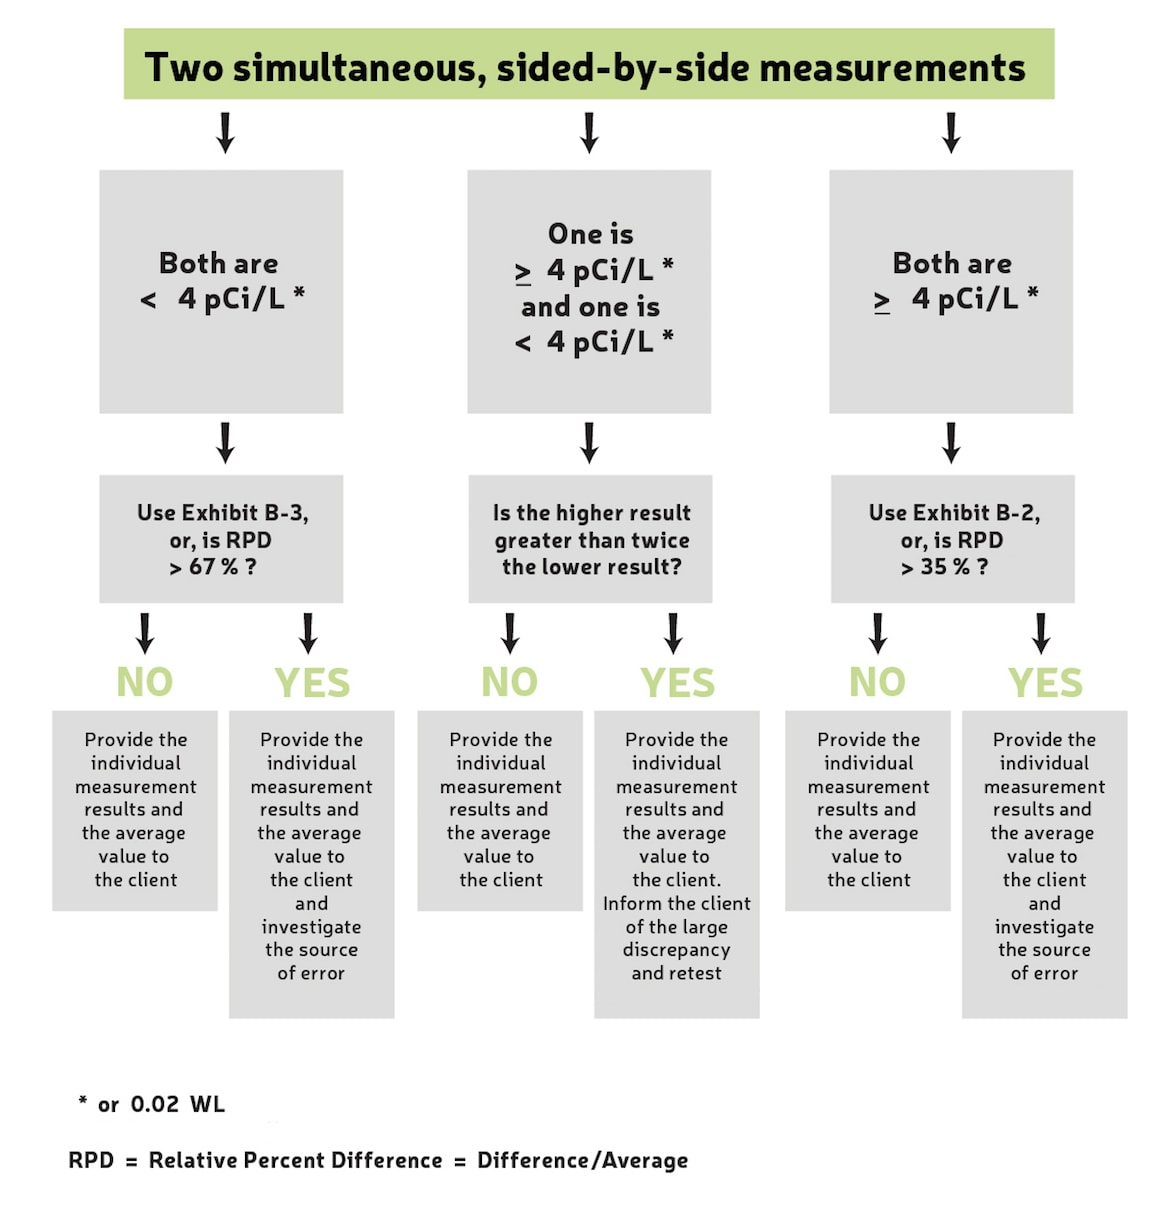 This is a recommended testing strategy for deciding on a retest when measurements vary significantly.